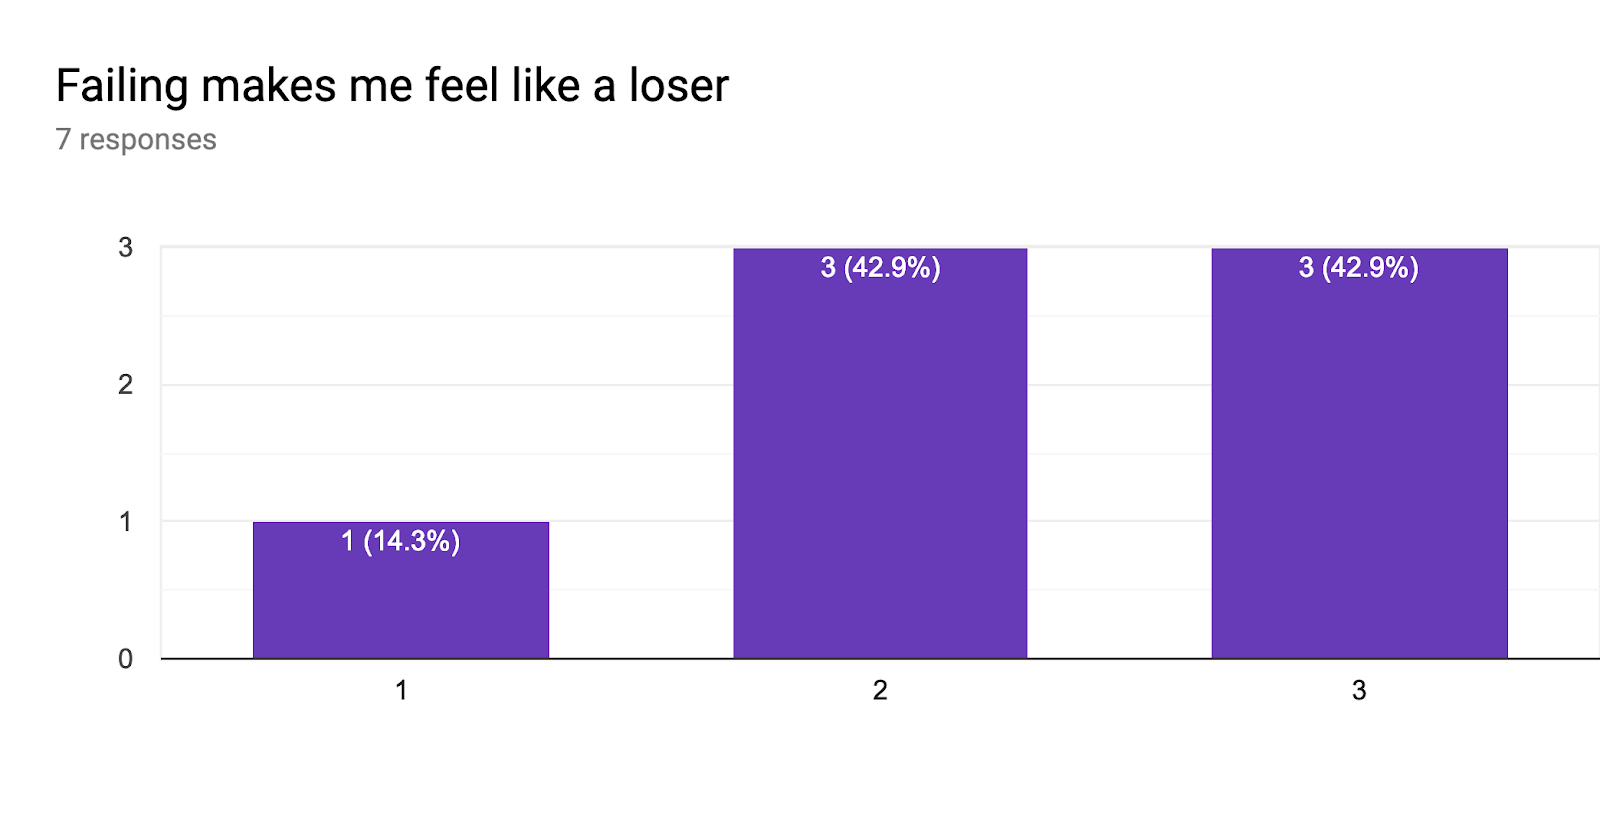 Forms response chart. Question title: Failing makes me feel like a loser. Number of responses: 7 responses.